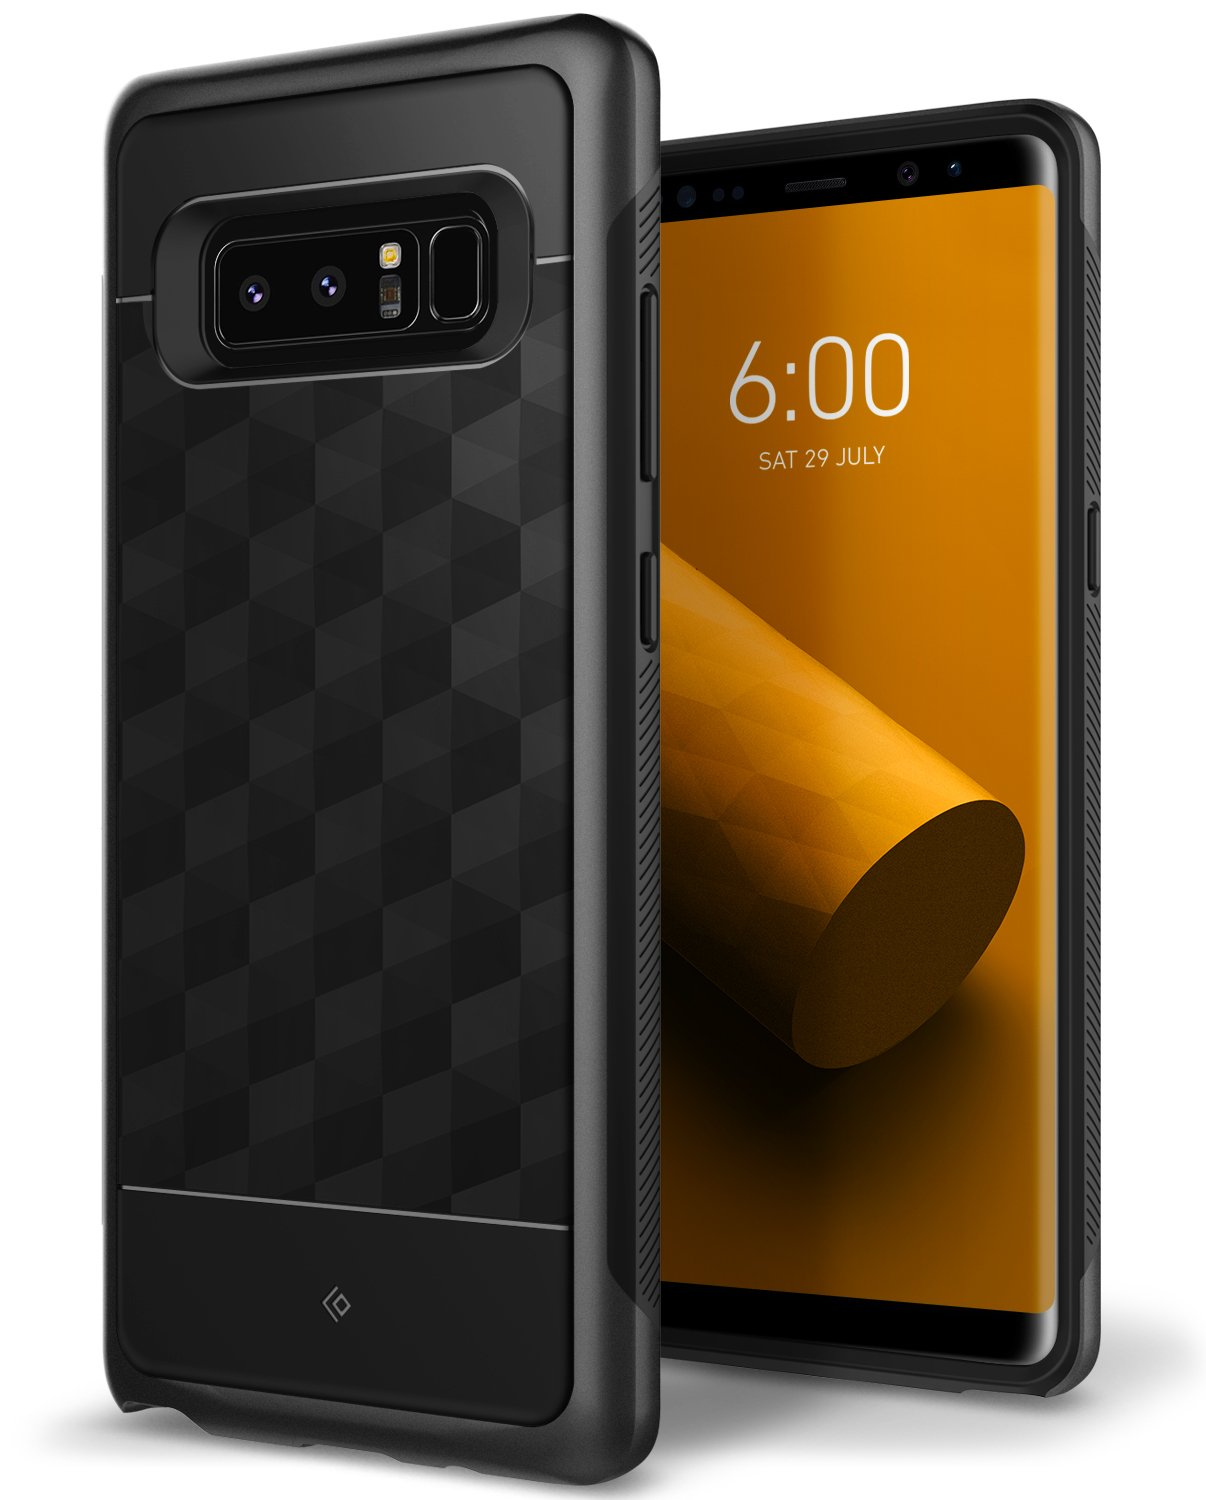 Galaxy Note 8 Case, Caseology [Parallax Series] Slim Protective Dual Layer Textured Cover Secure Grip Geometric Design For Samsung Galaxy Note 8 (2017)   Black by Caseology